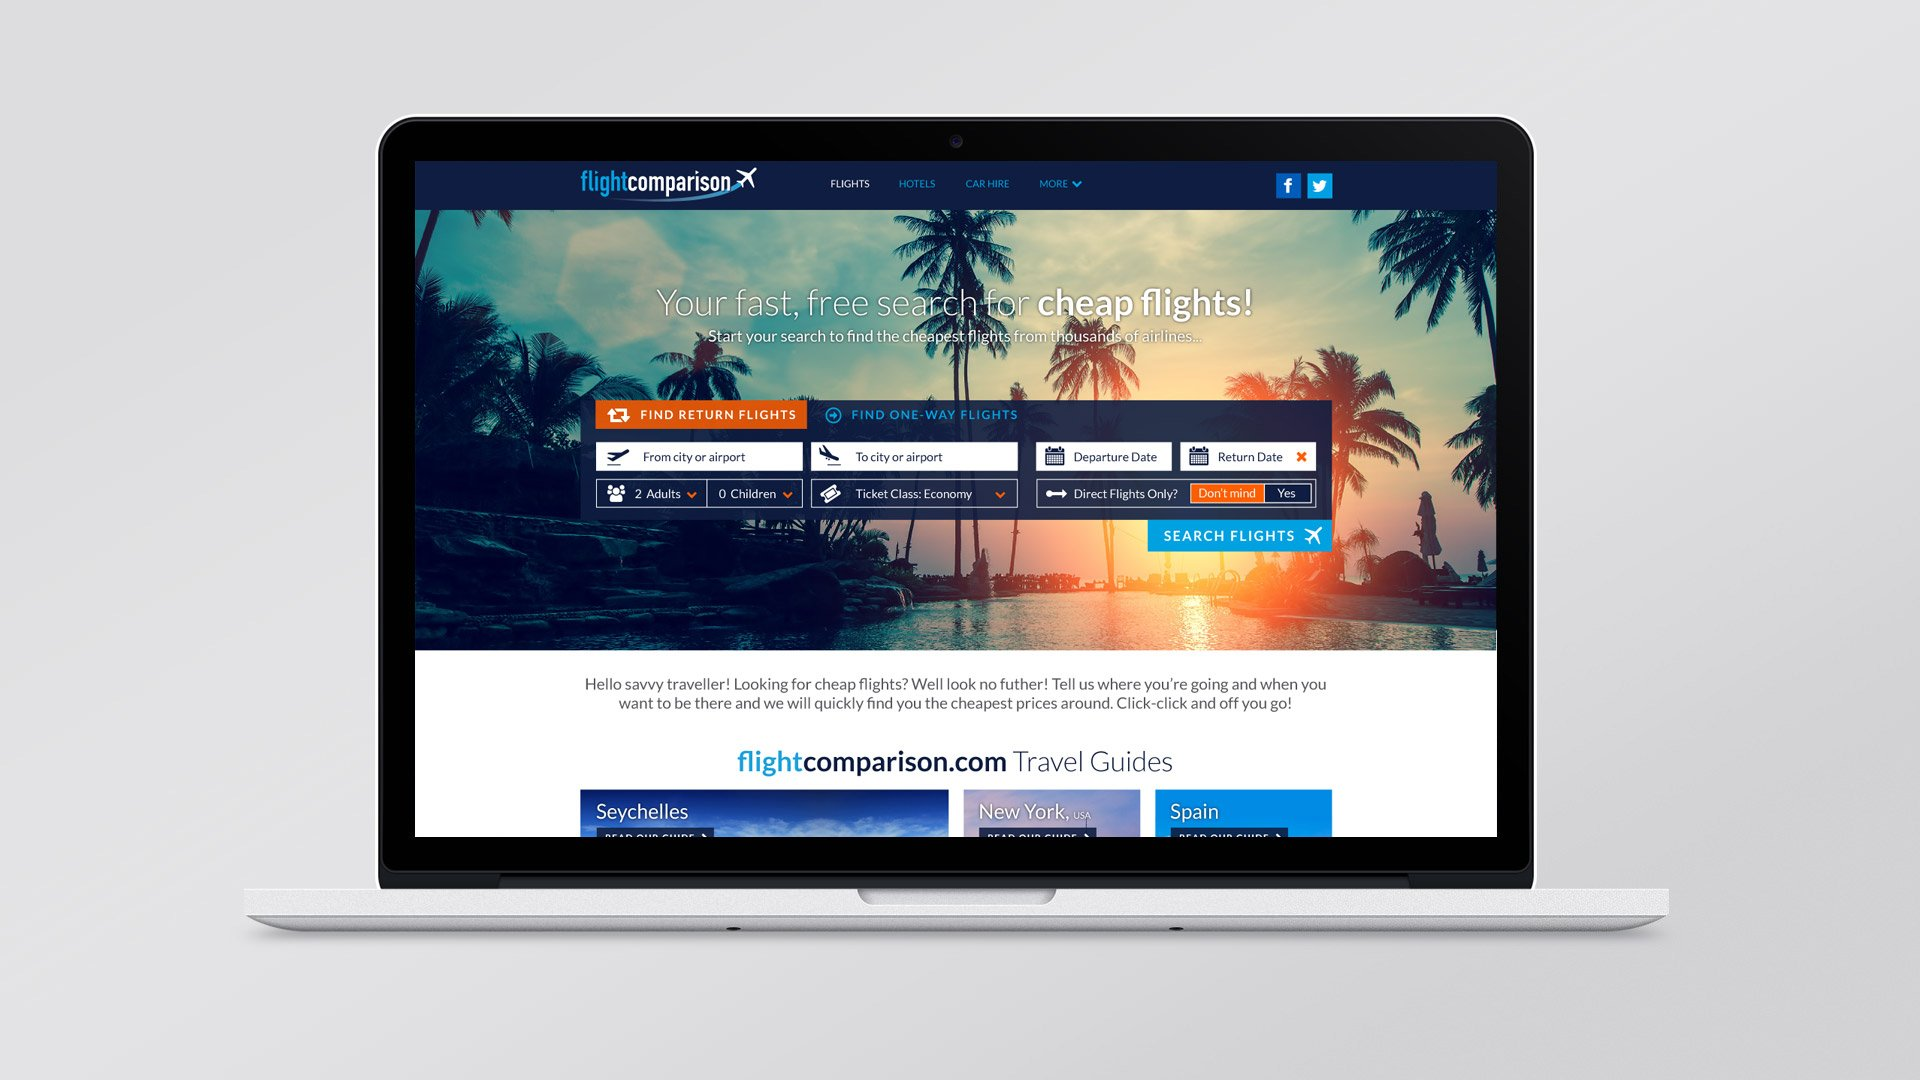 Flight Comparison homepage design